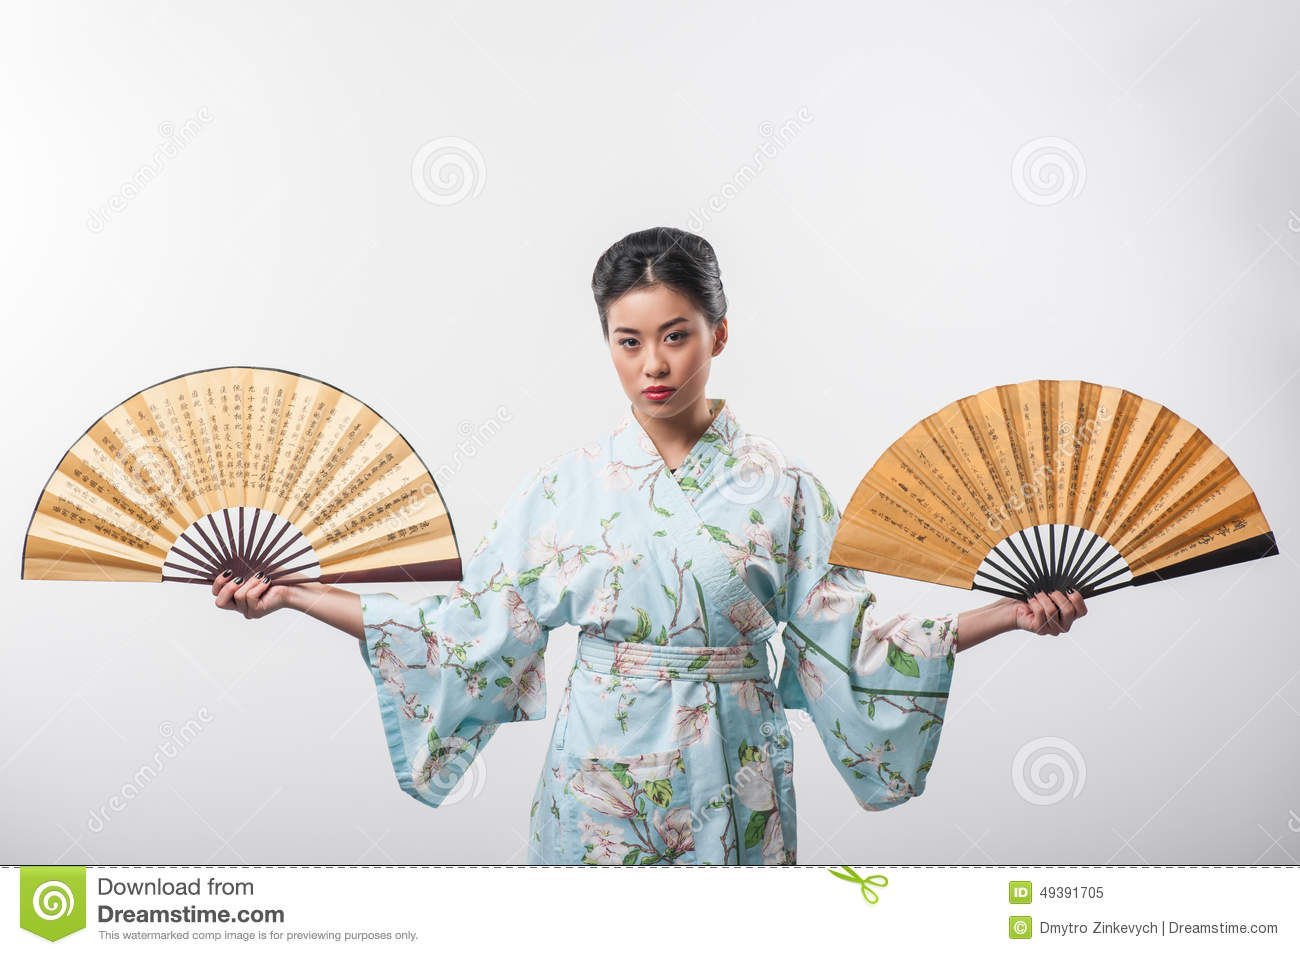 Japanese culture. Portrait of attractive Asian woman wearing Japanese  kimono and posing with two traditional hand fans while standing against  white ...